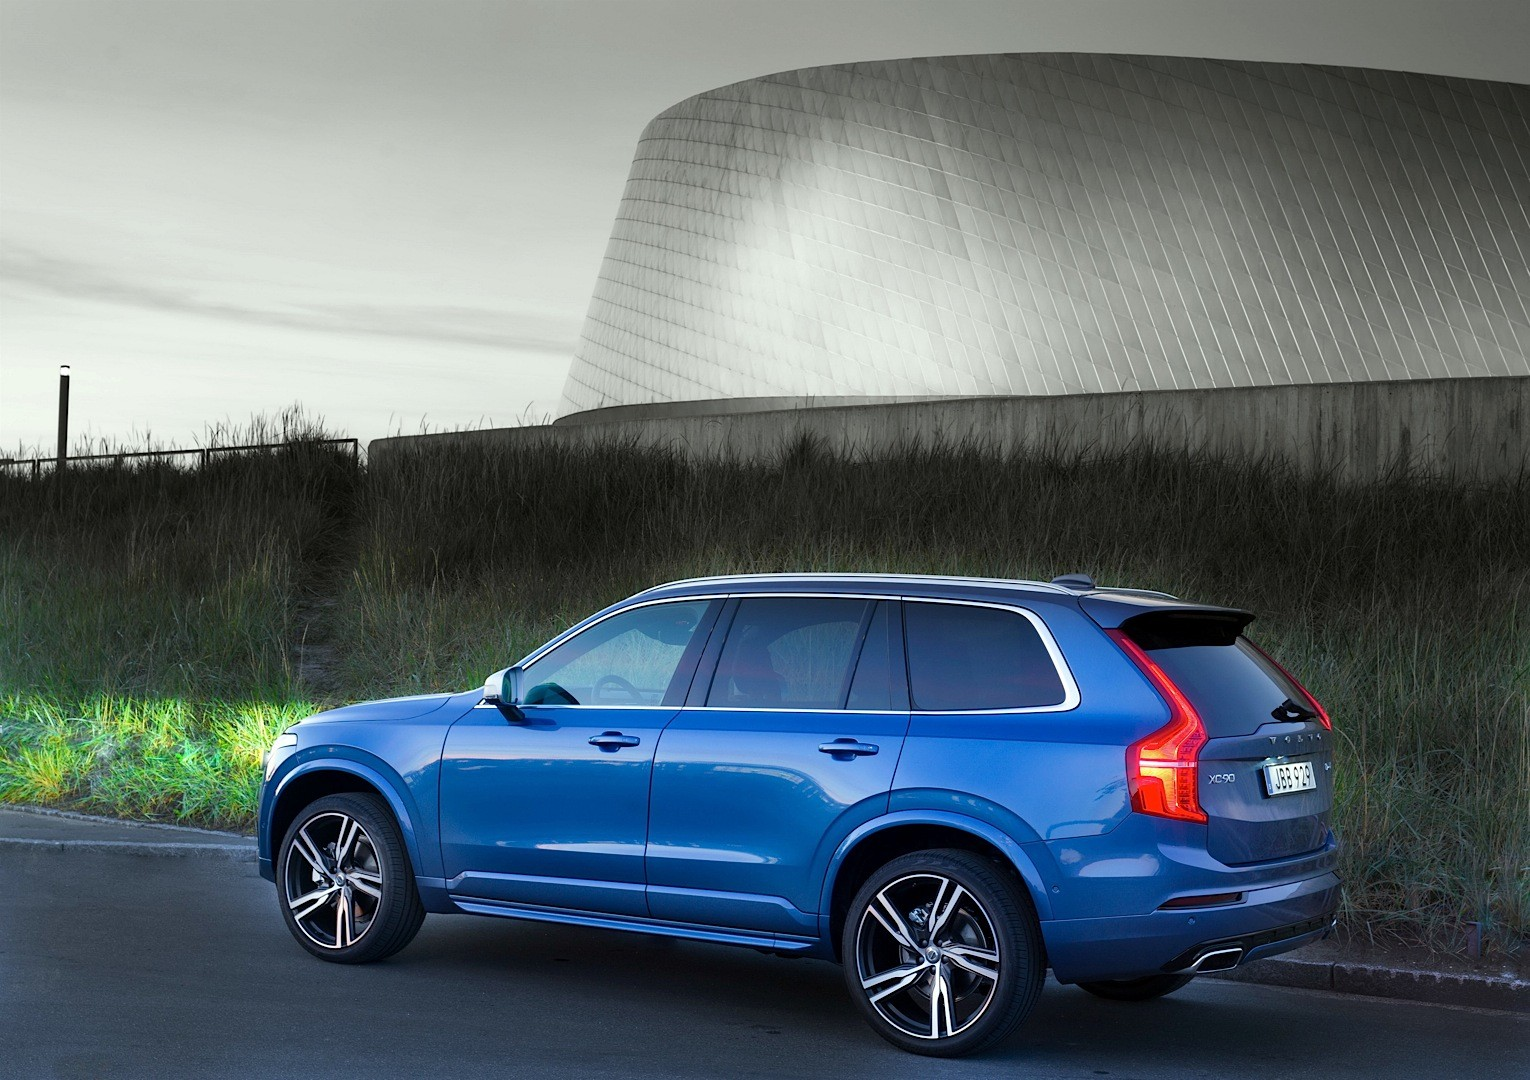 2016 Volvo XC90 R-Design Shows More Aggressive Design and ...